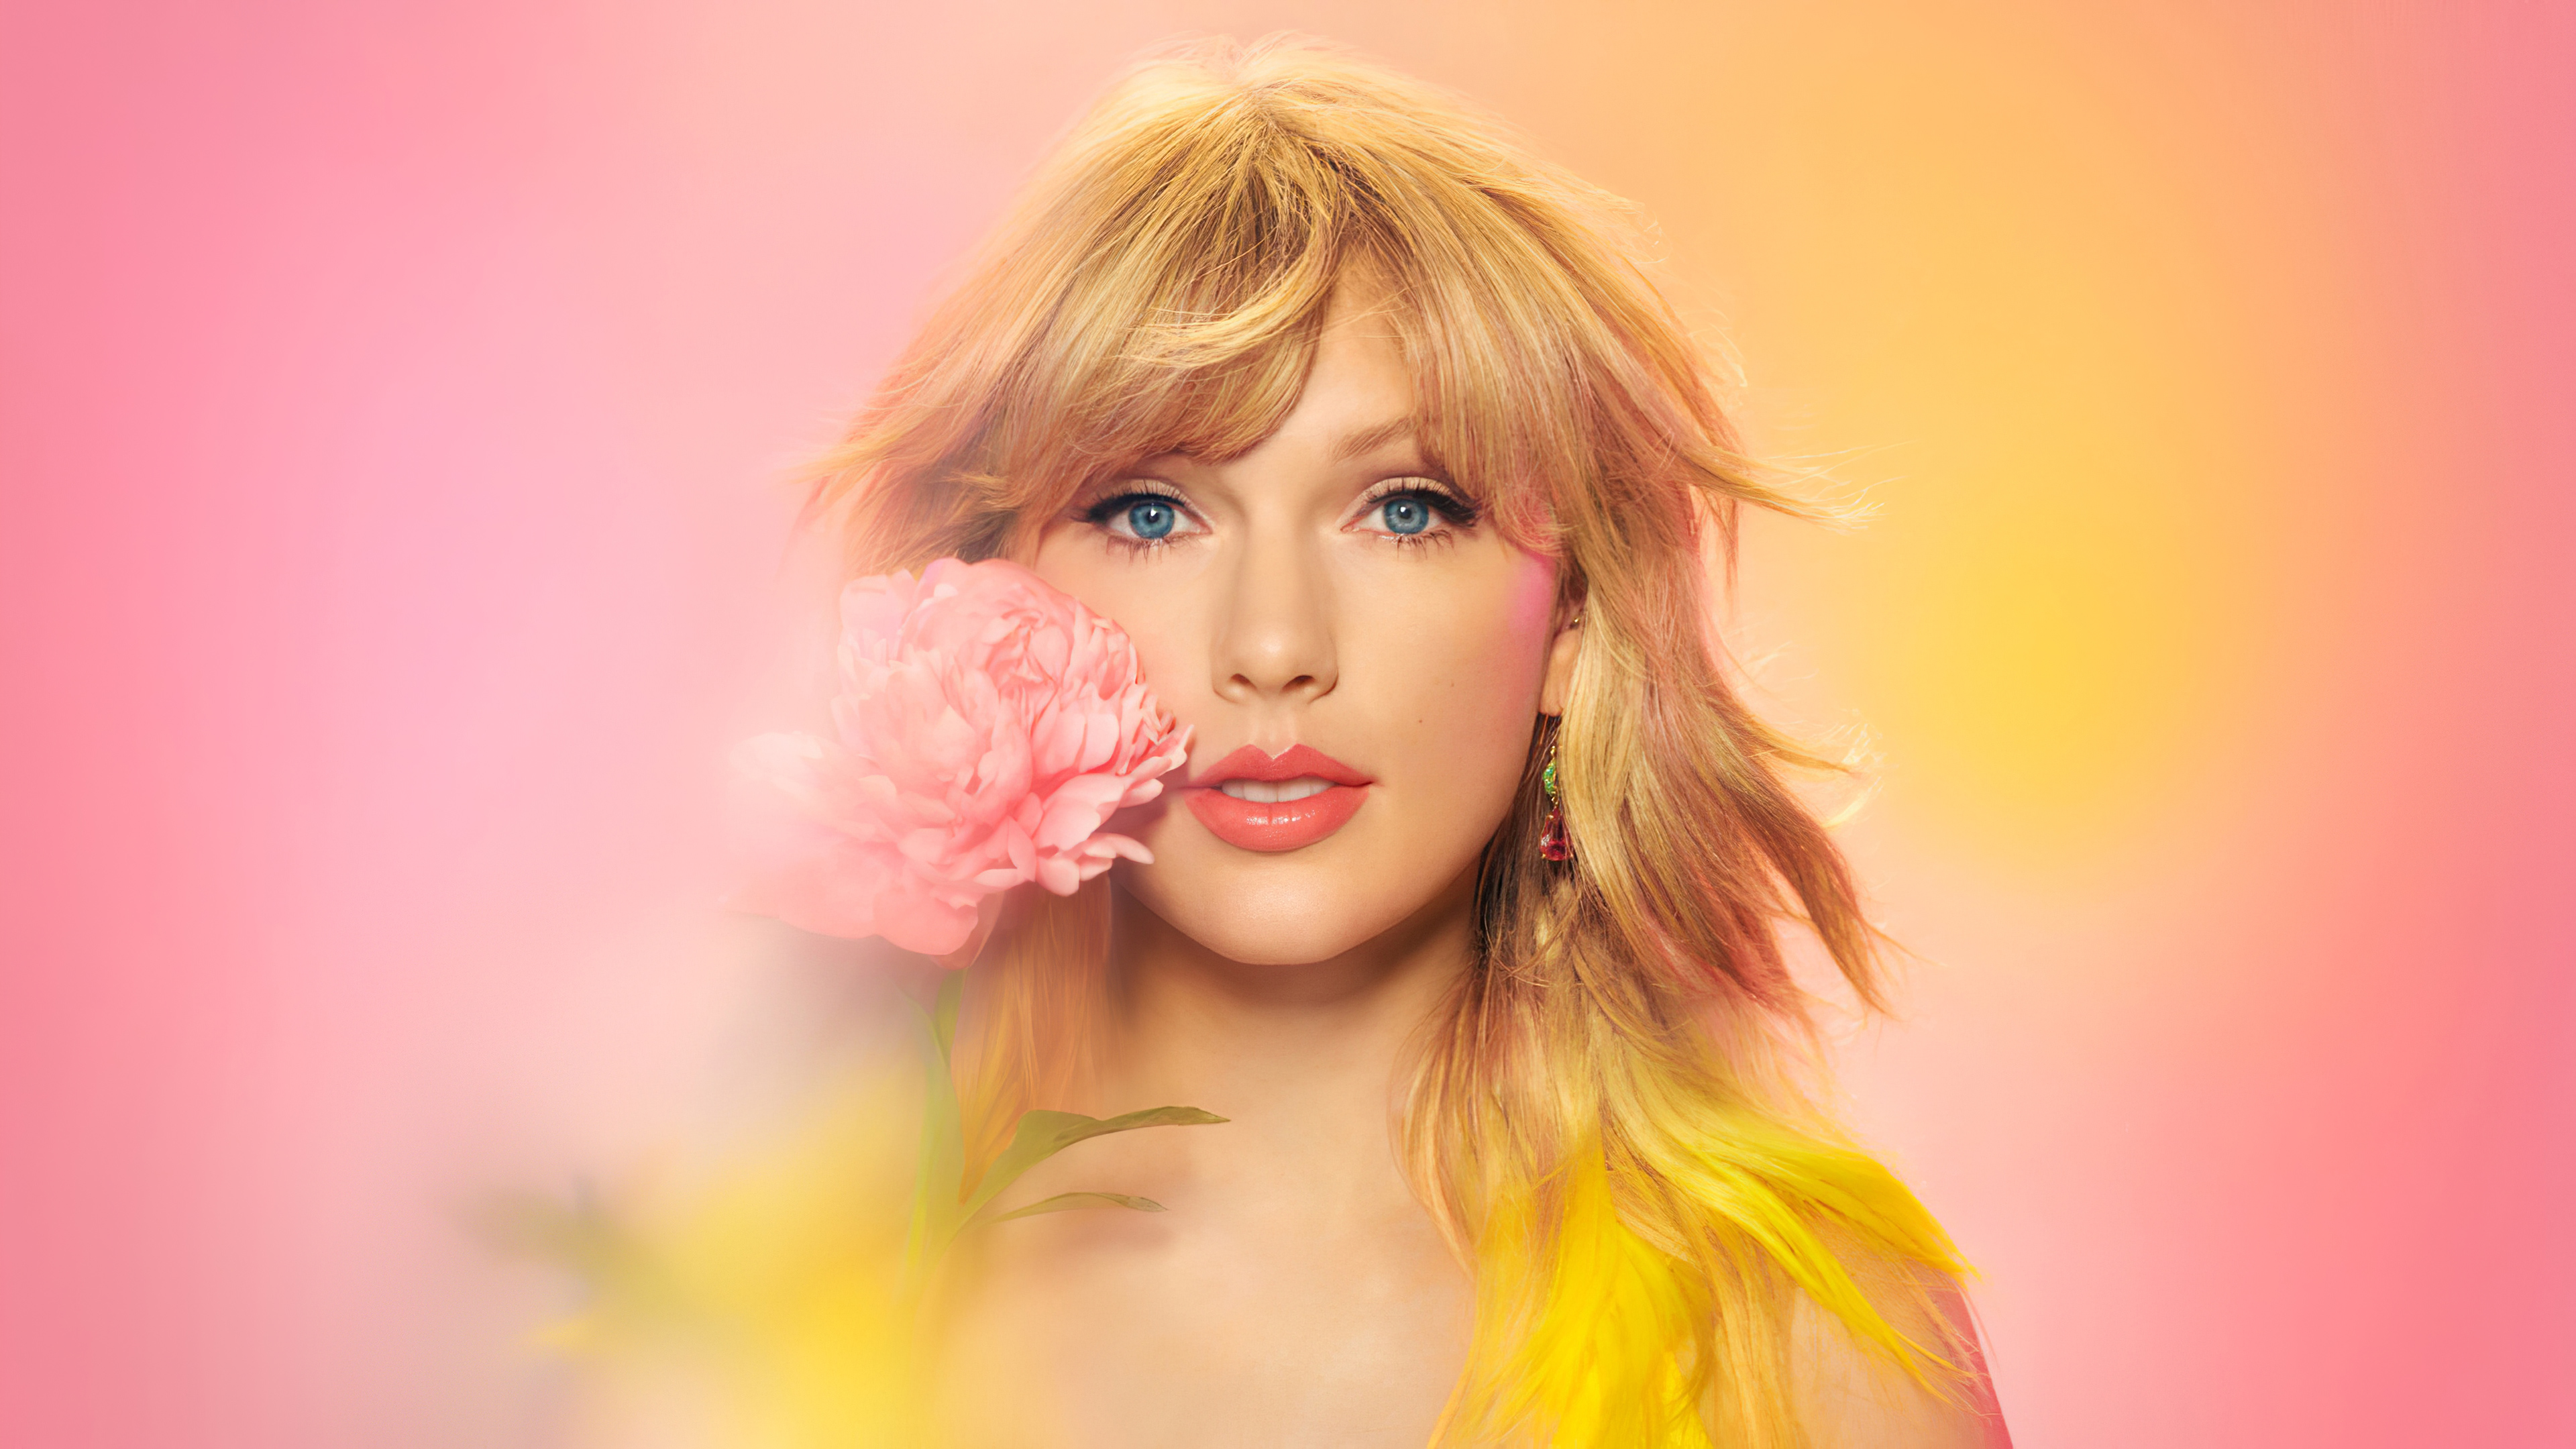 Taylor Swift Apple Music 2020 Photoshoot 4k Hd Music 4k Wallpapers Images Backgrounds Photos And Pictures